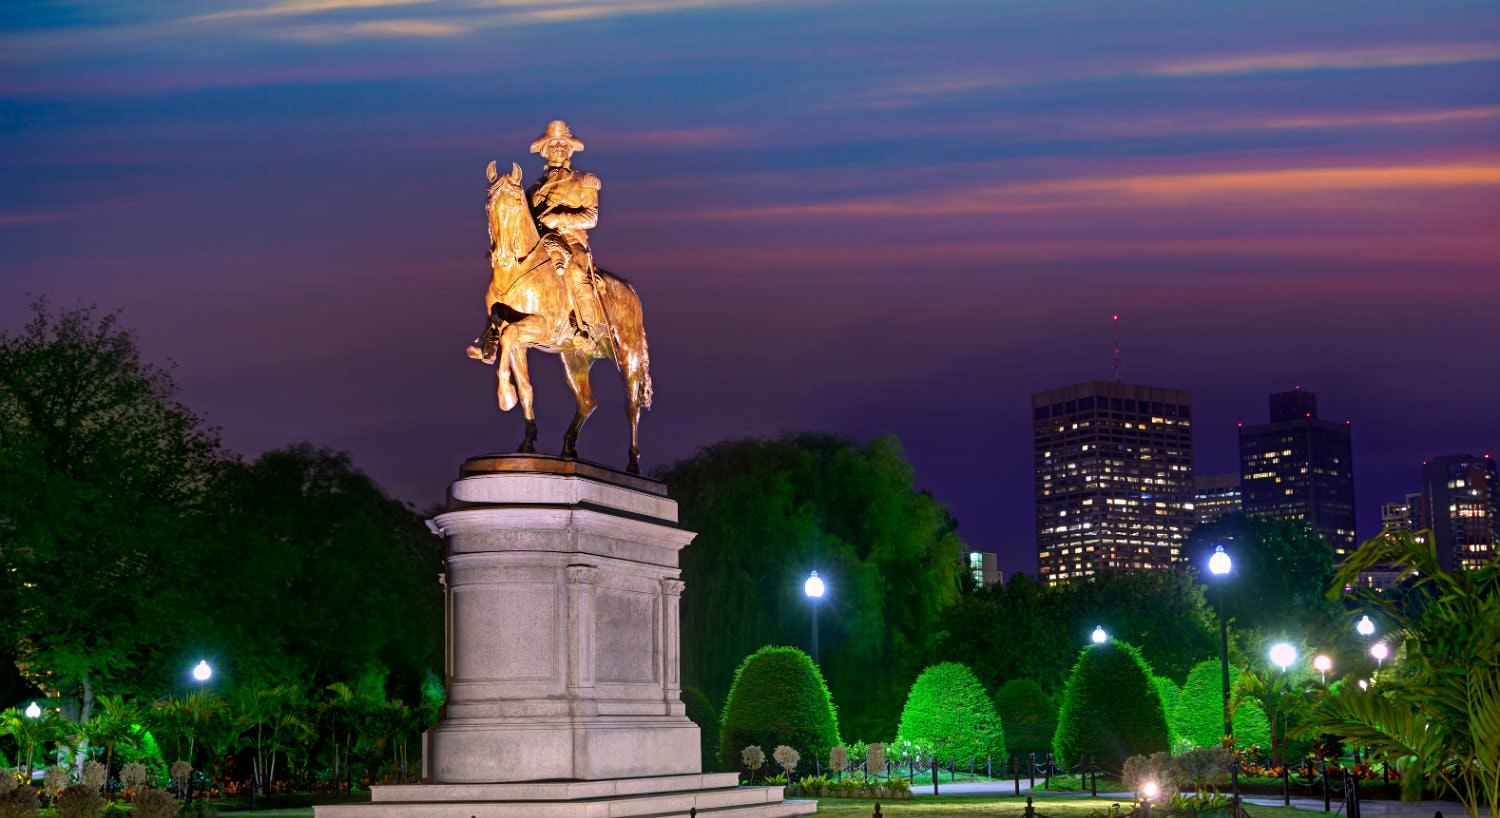 Bronze statue of George Washington lit up at dusk against a backdrop of lush greenery and blue and purple skies